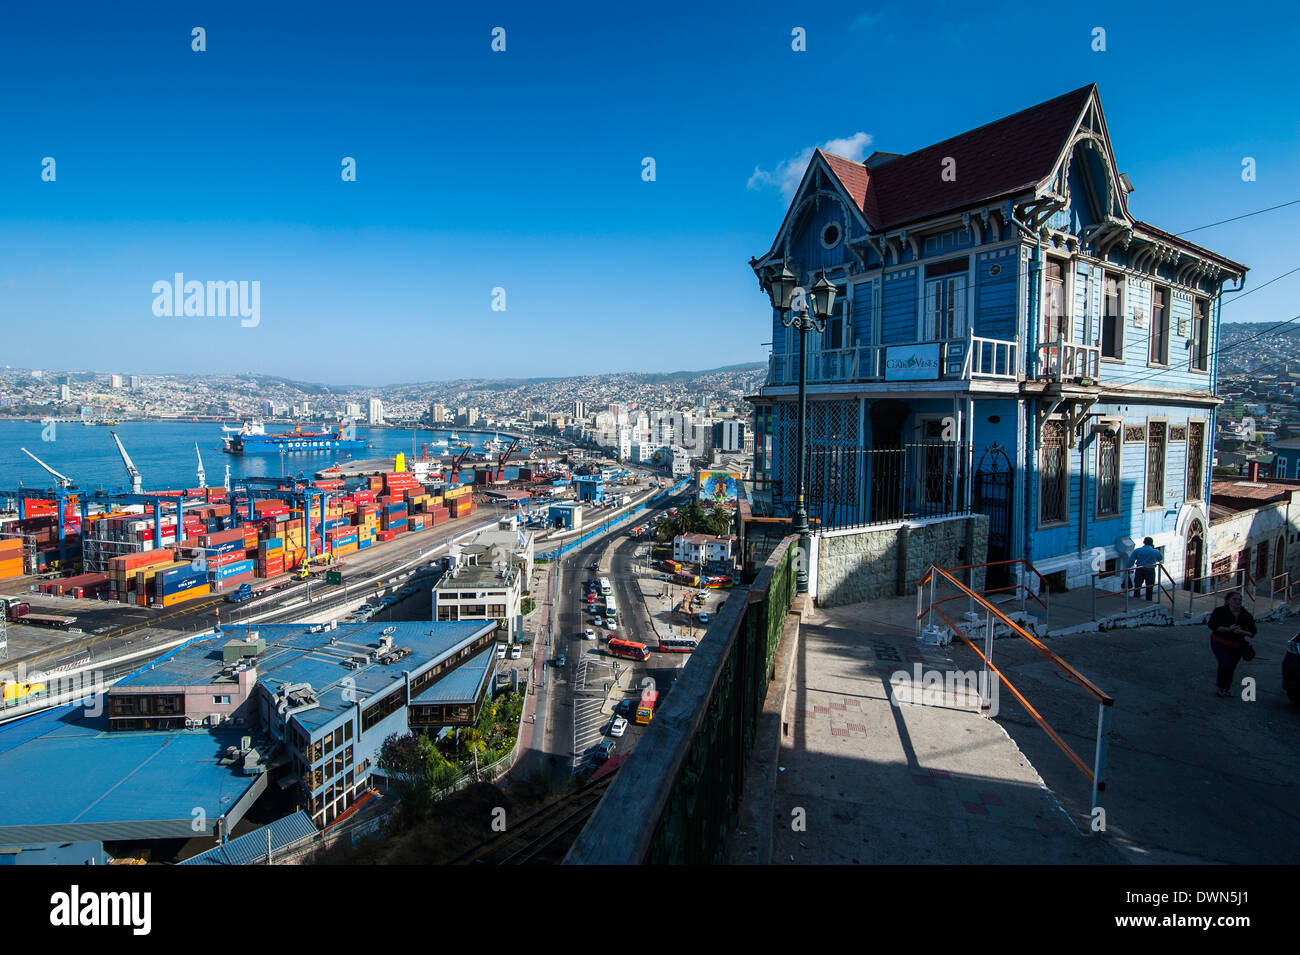 Old wooden villa overlooking the Historic Quarter, UNESCO World Heritage Site, Valparaiso, Chile, South America - Stock Image